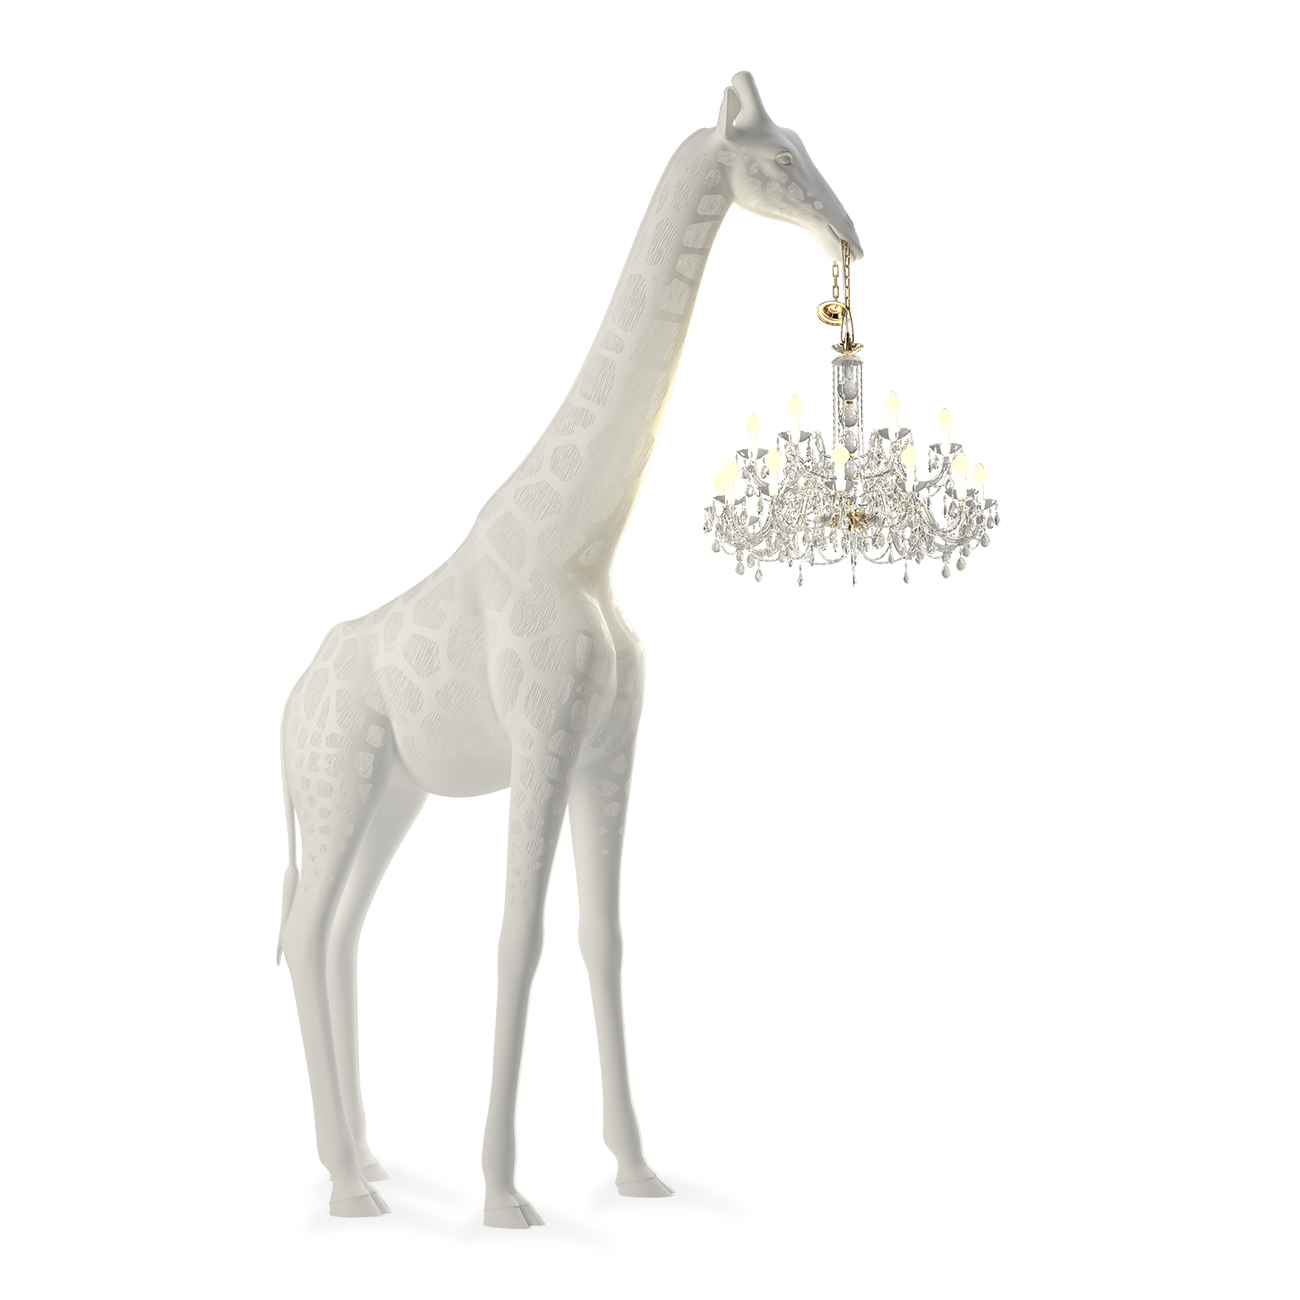 GIRAFFE IN LOVE - Marcantonio design